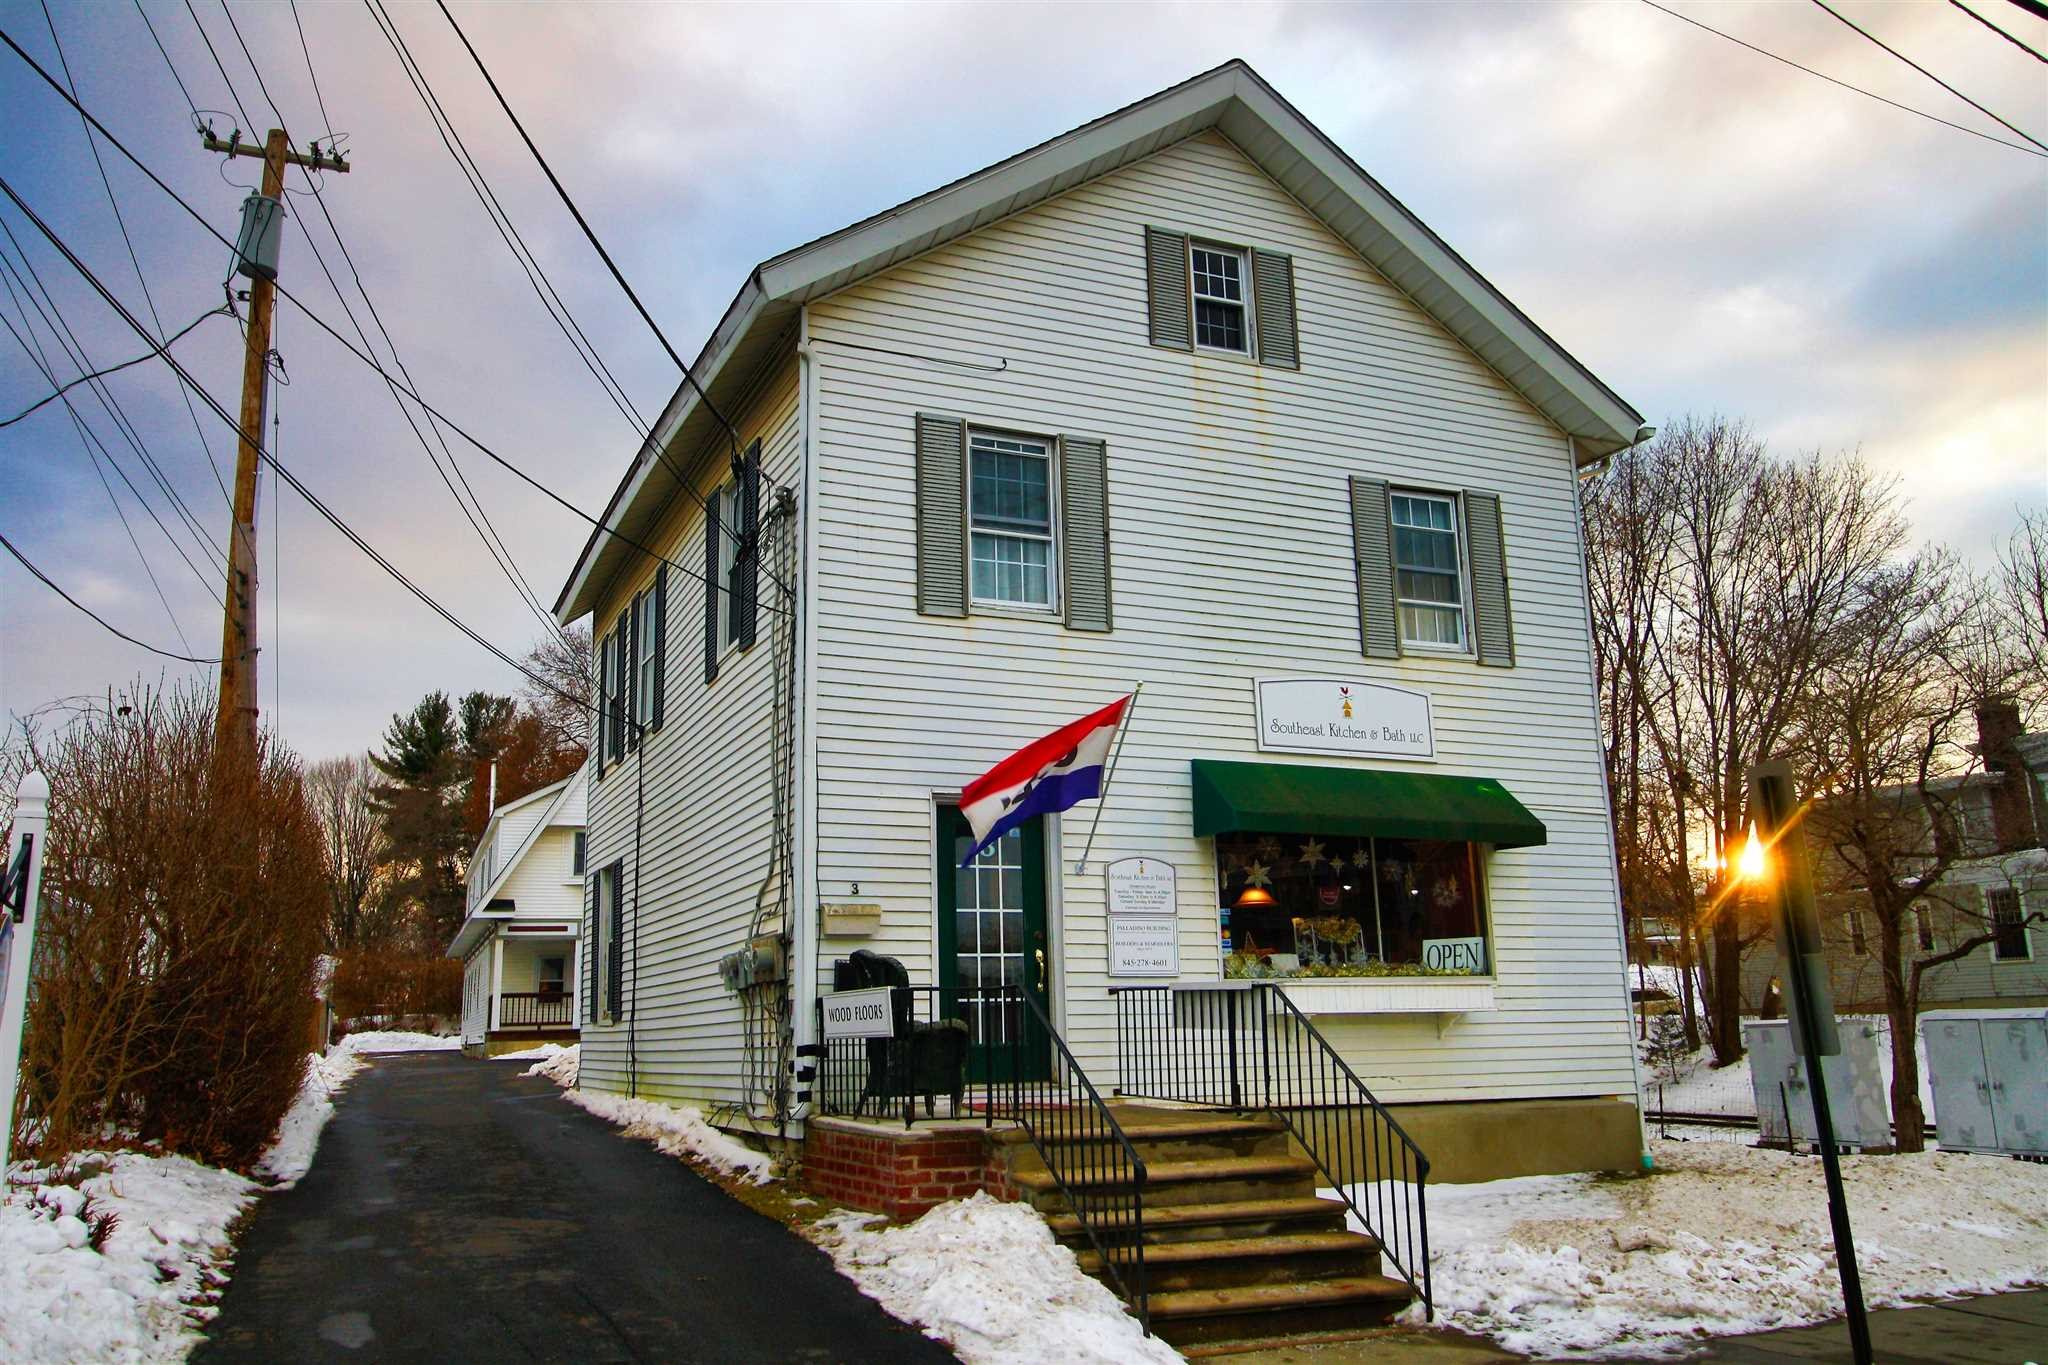 Single Family Home for Rent at 3 MAIN Street 3 MAIN Street Pawling, New York 12564 United States